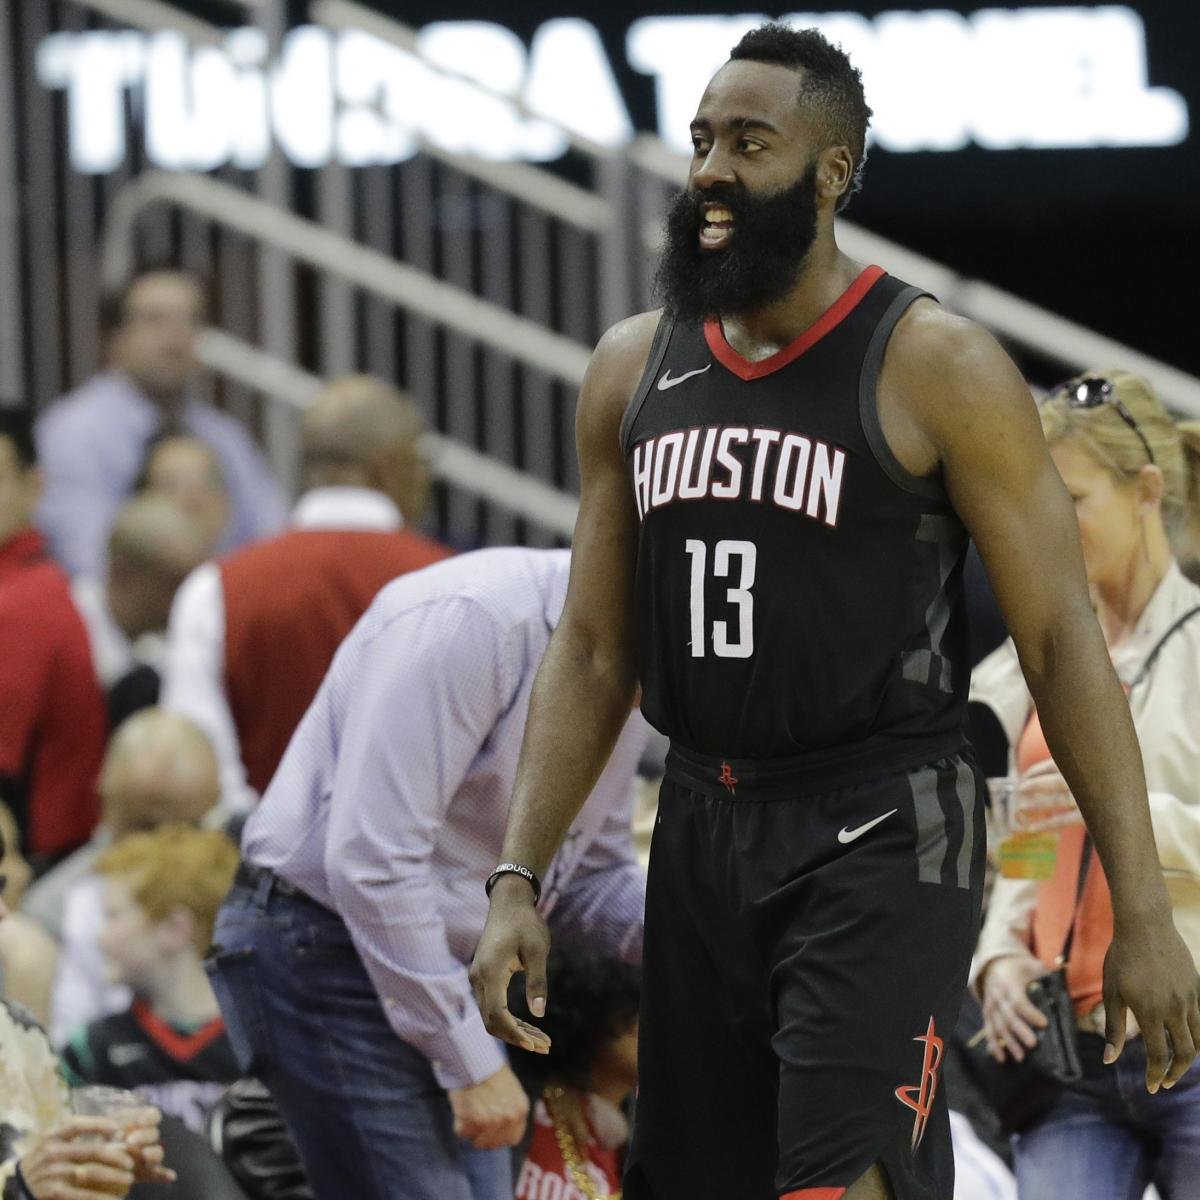 Houston Rockets Defensive Coach: NBA Awards Show 2018: Winners, Voting Results And Twitter